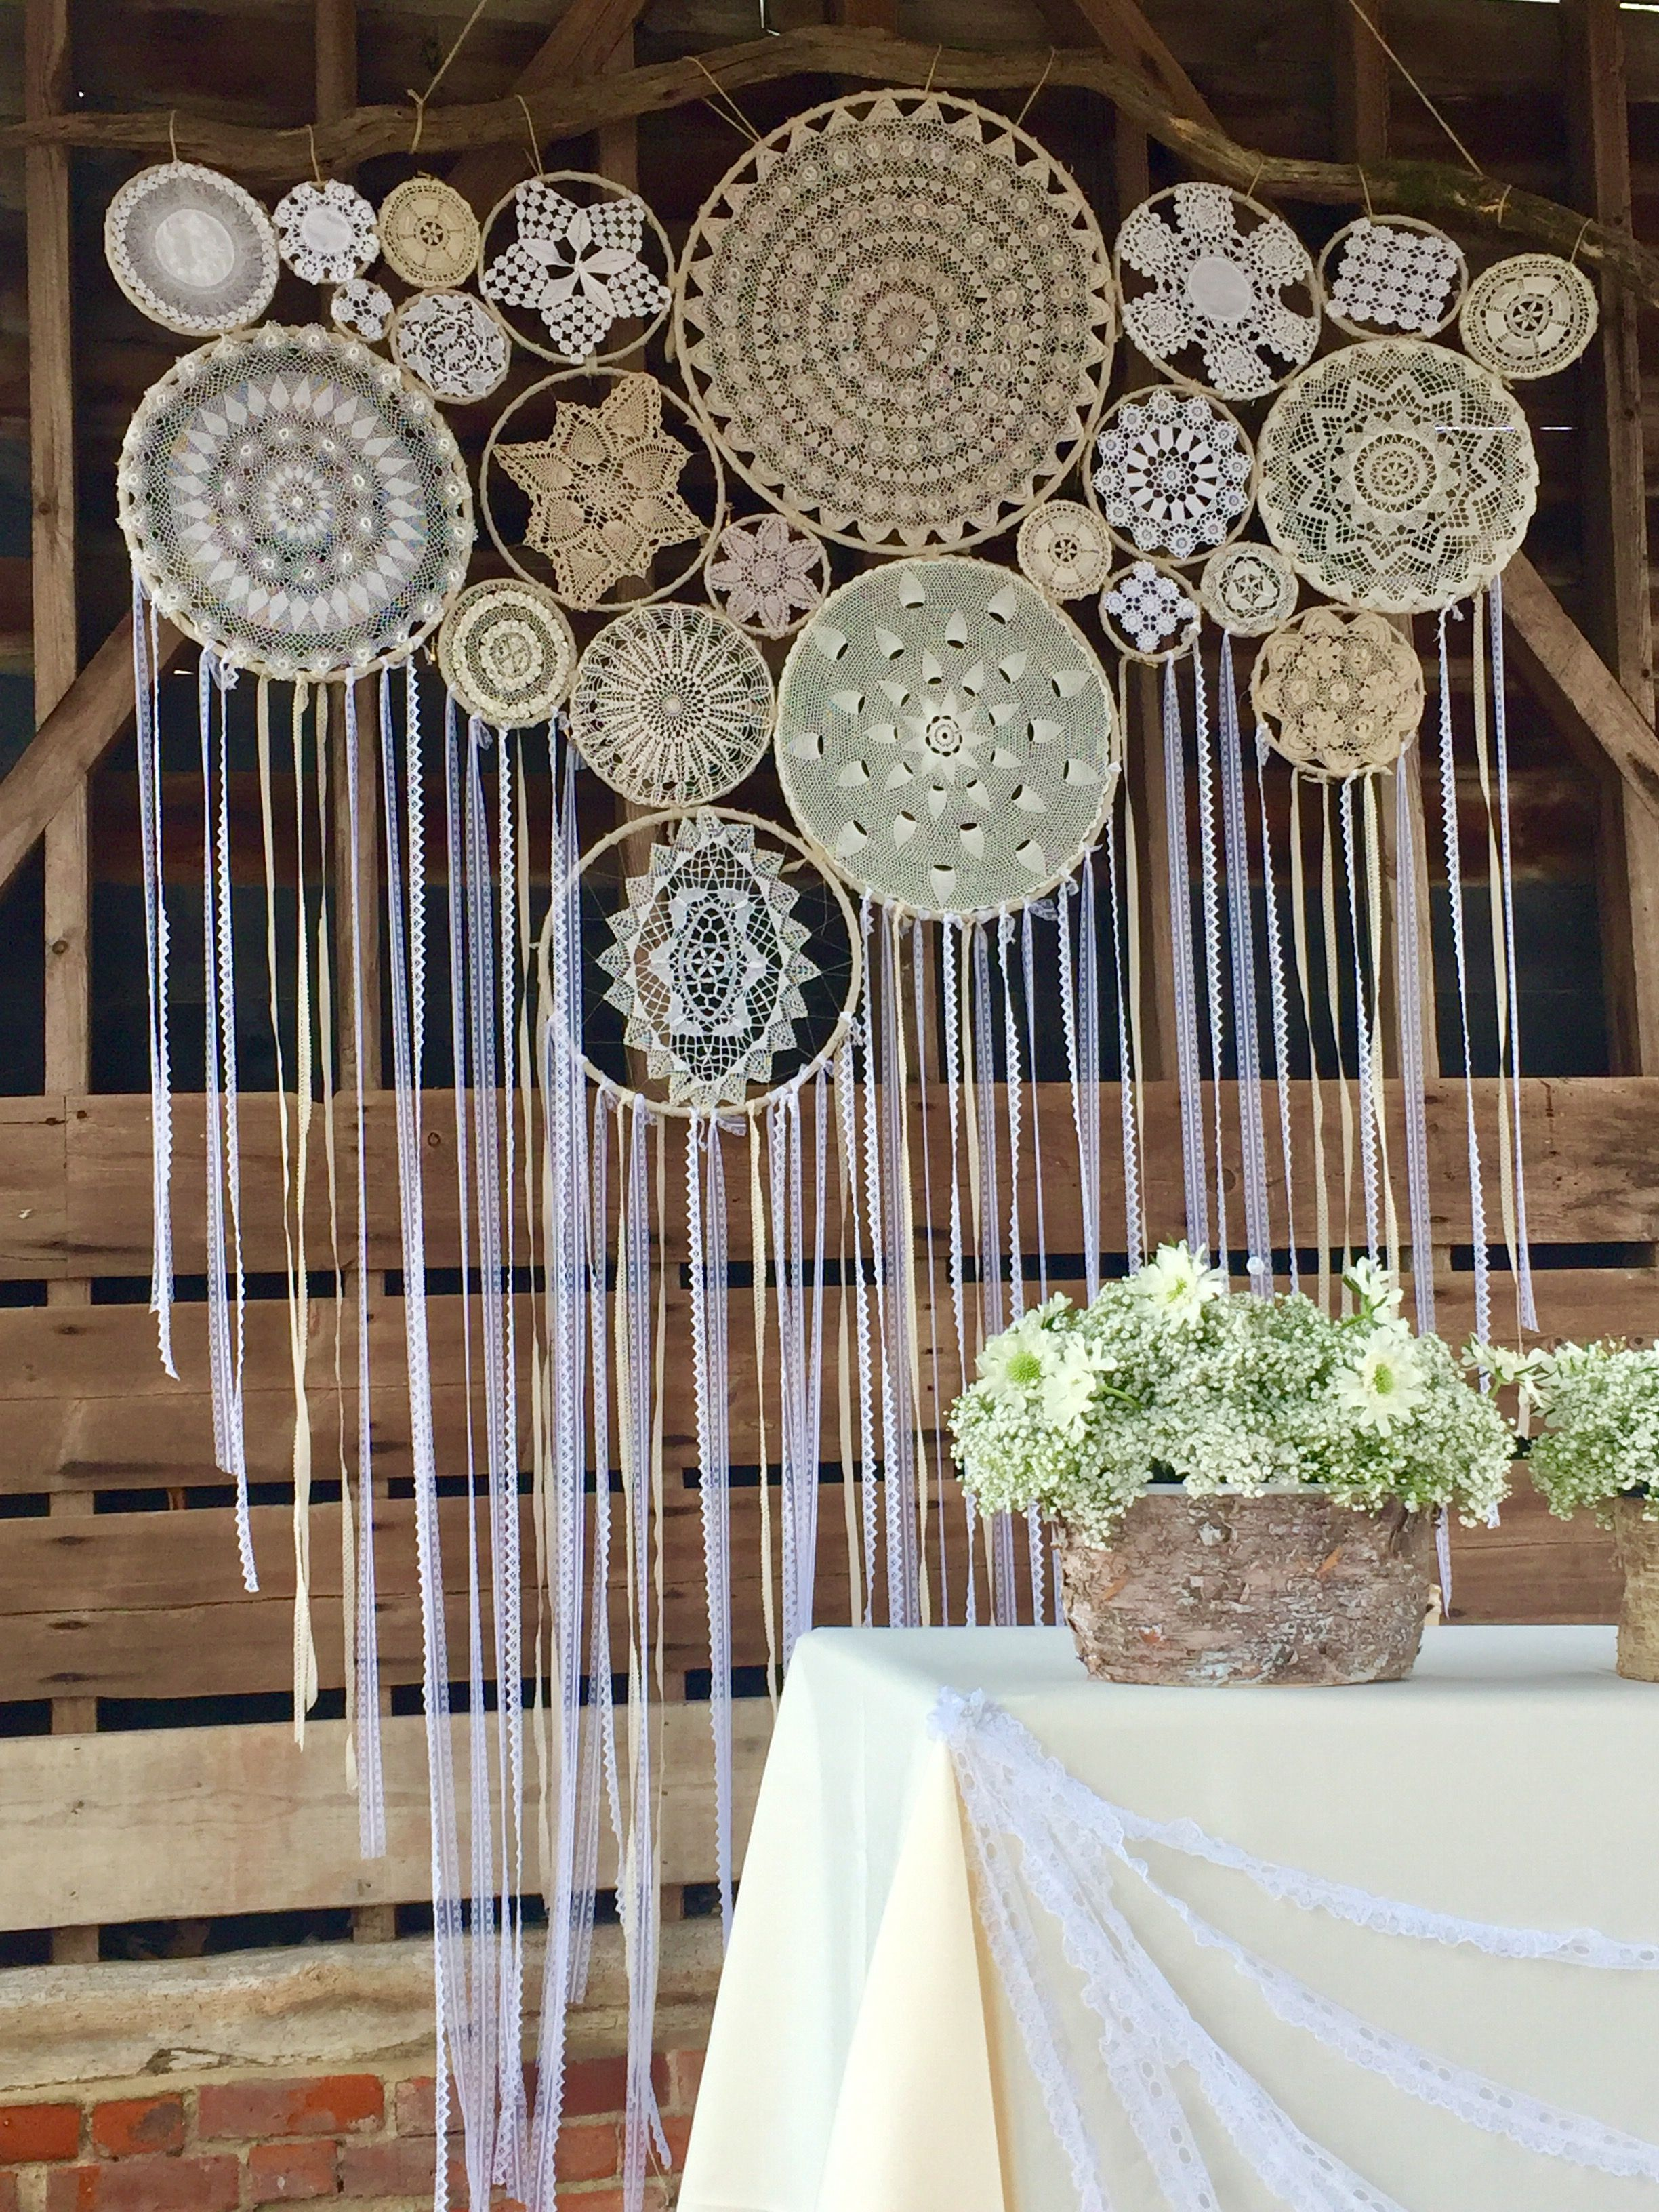 Wedding Dream Catcher Backdrop Boho Wedding Ideas Rustic Weddings